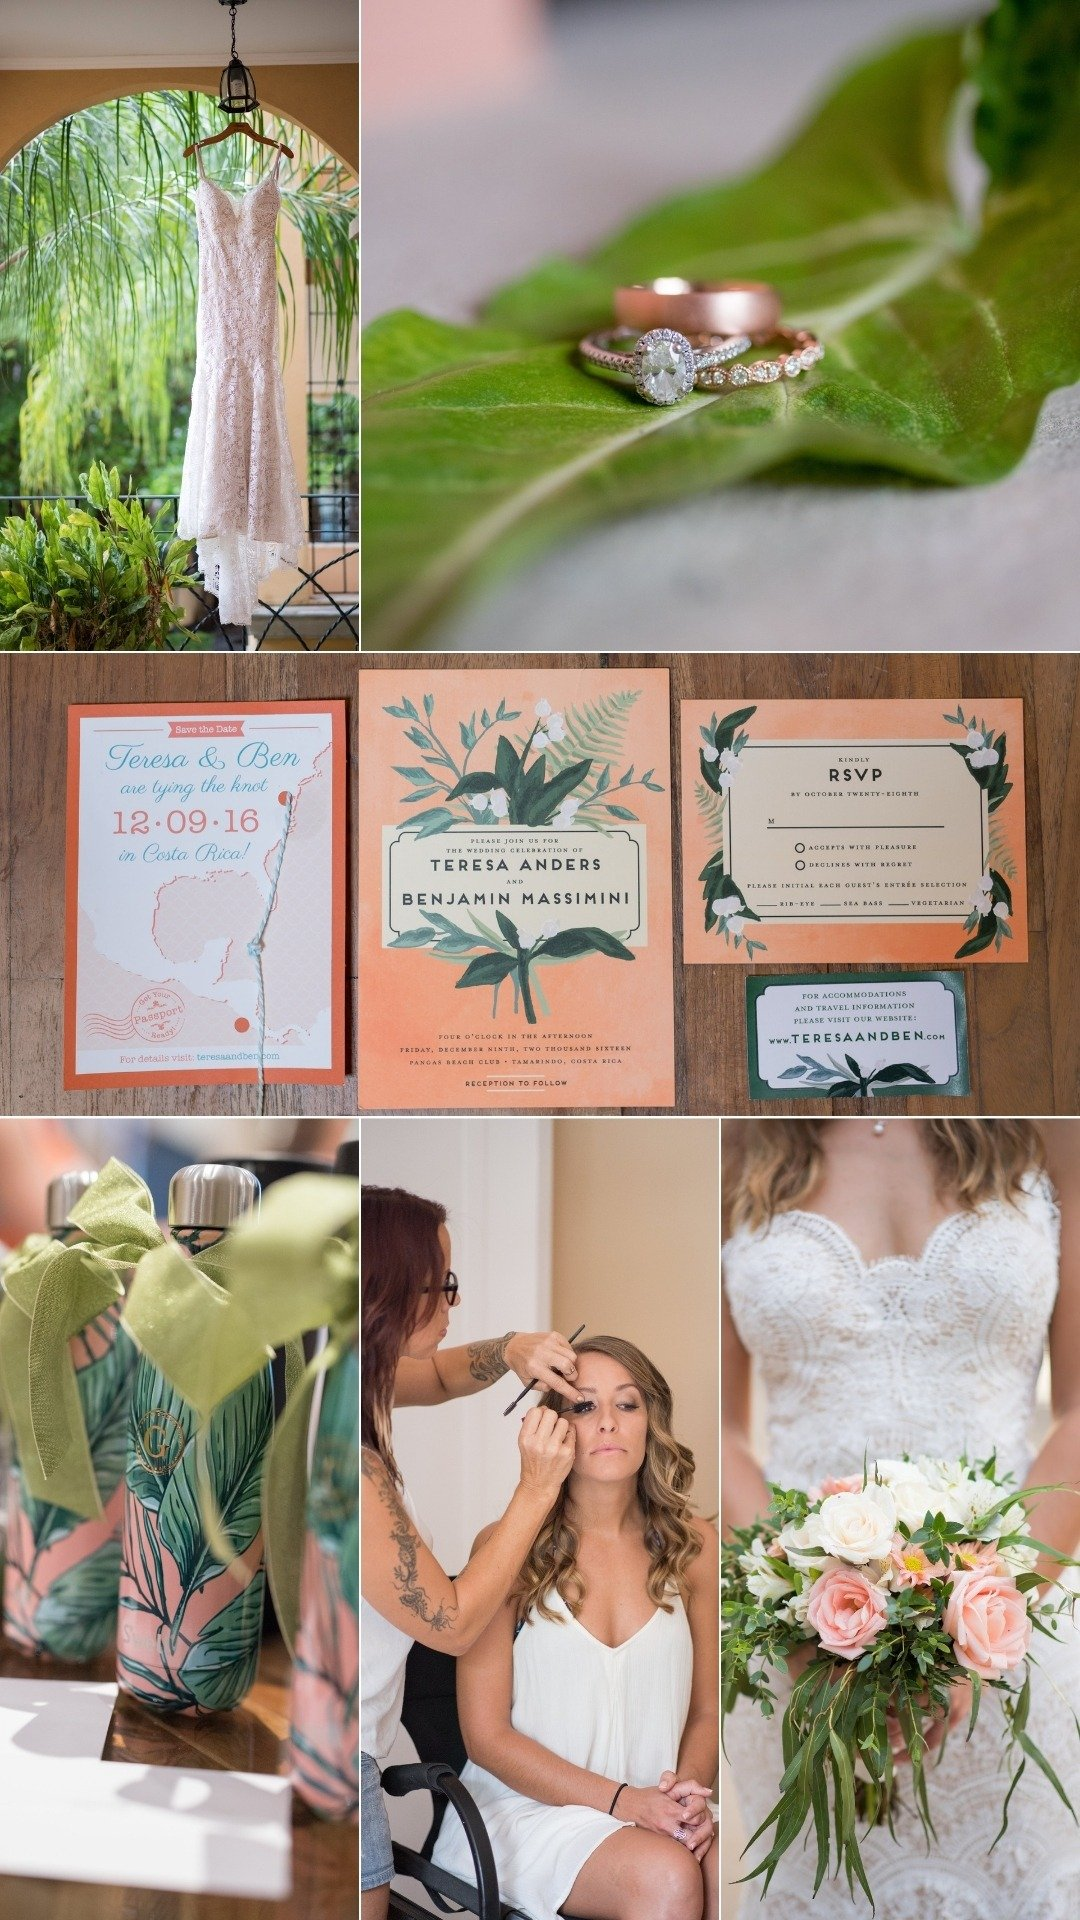 morning of the wedding with tropical vibes